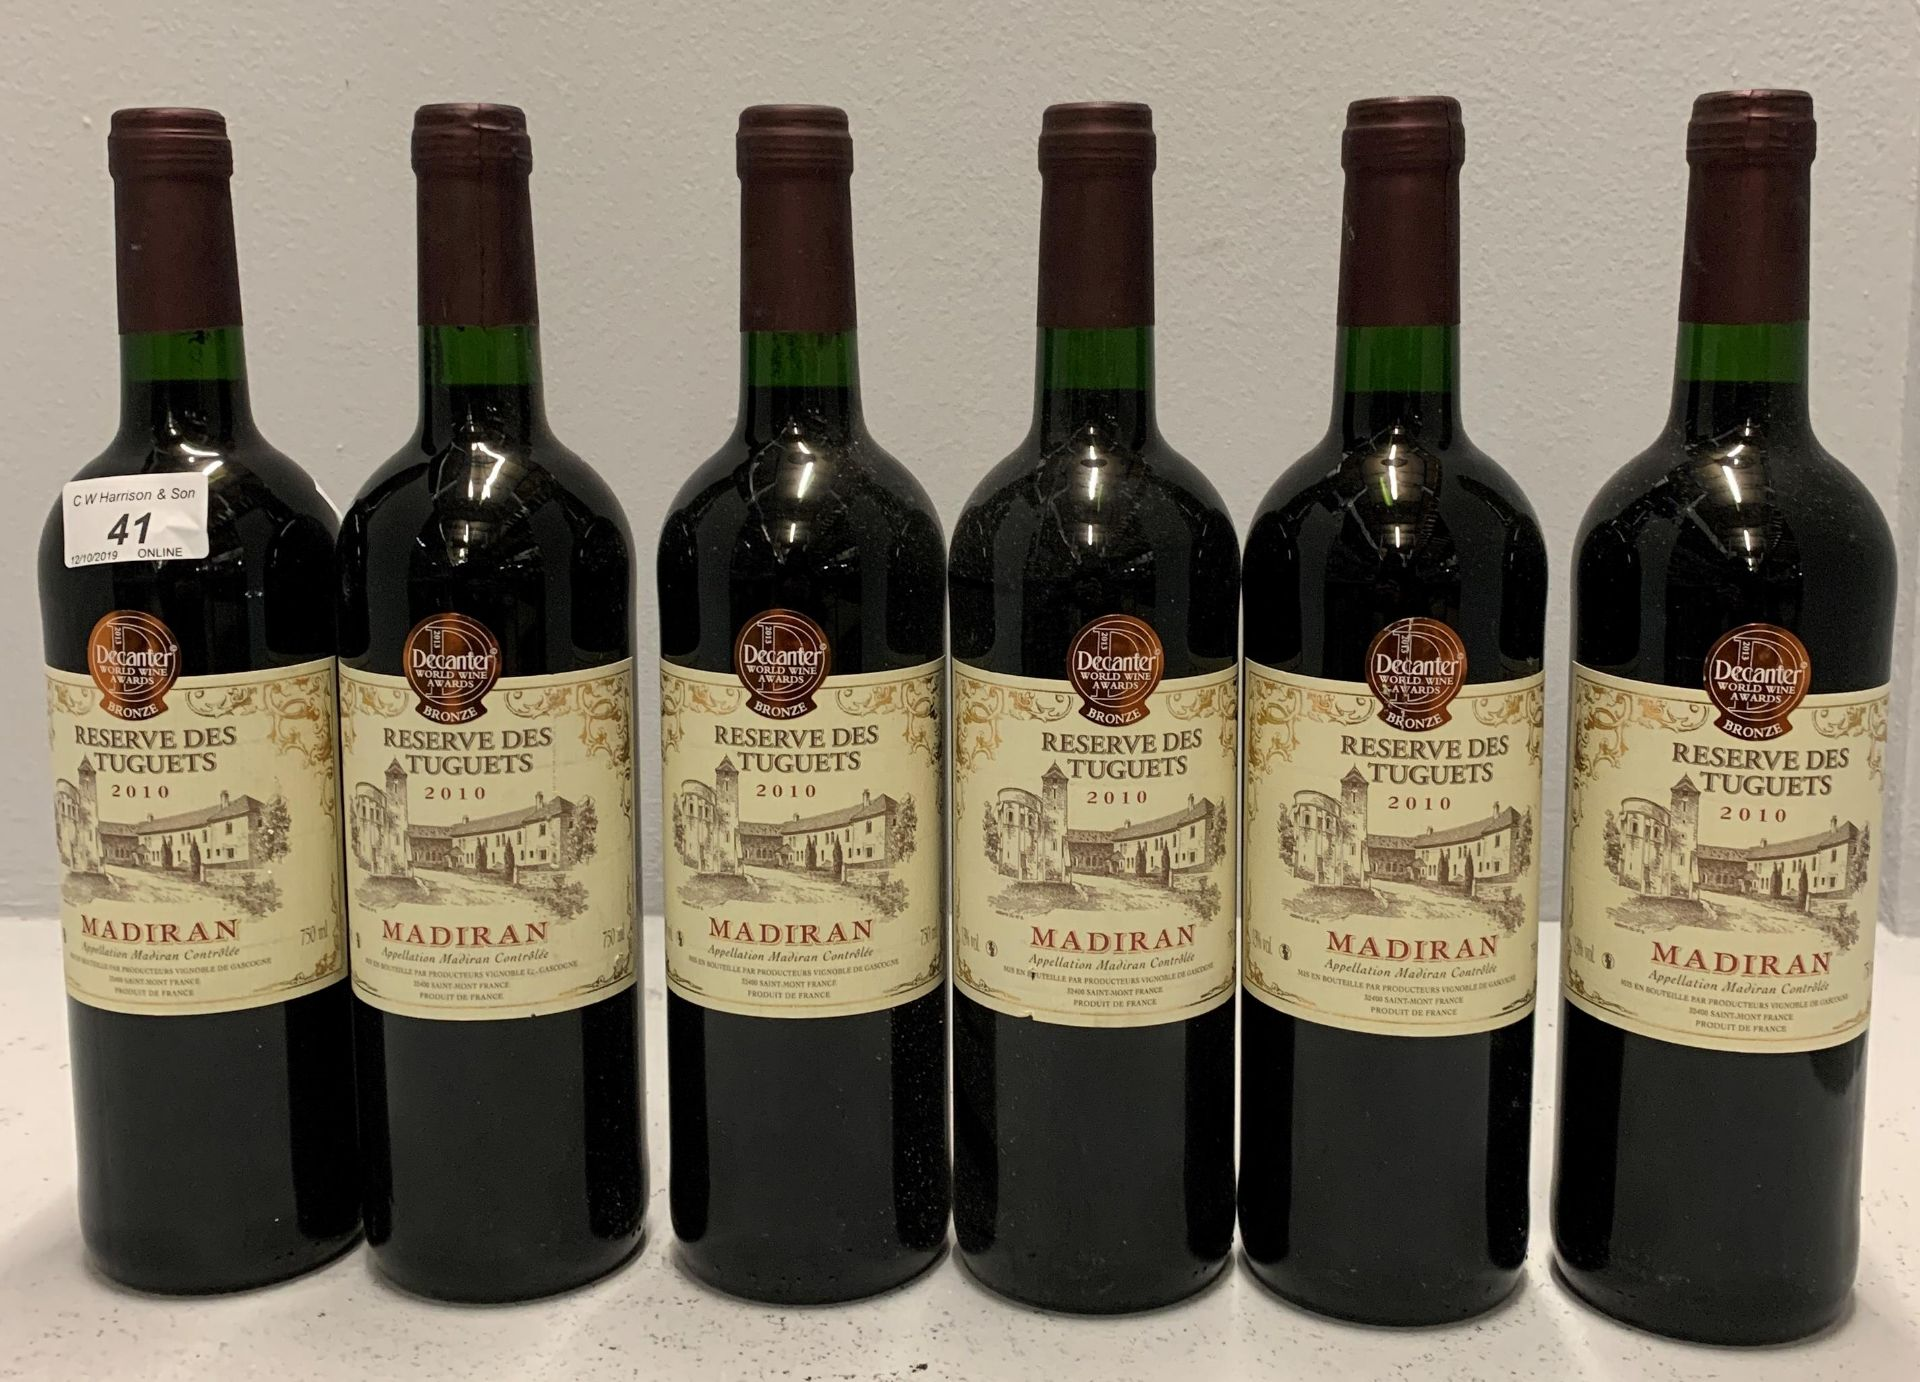 Lot 41 - 6 x 750ml bottles Reserve Des Tuguets 20